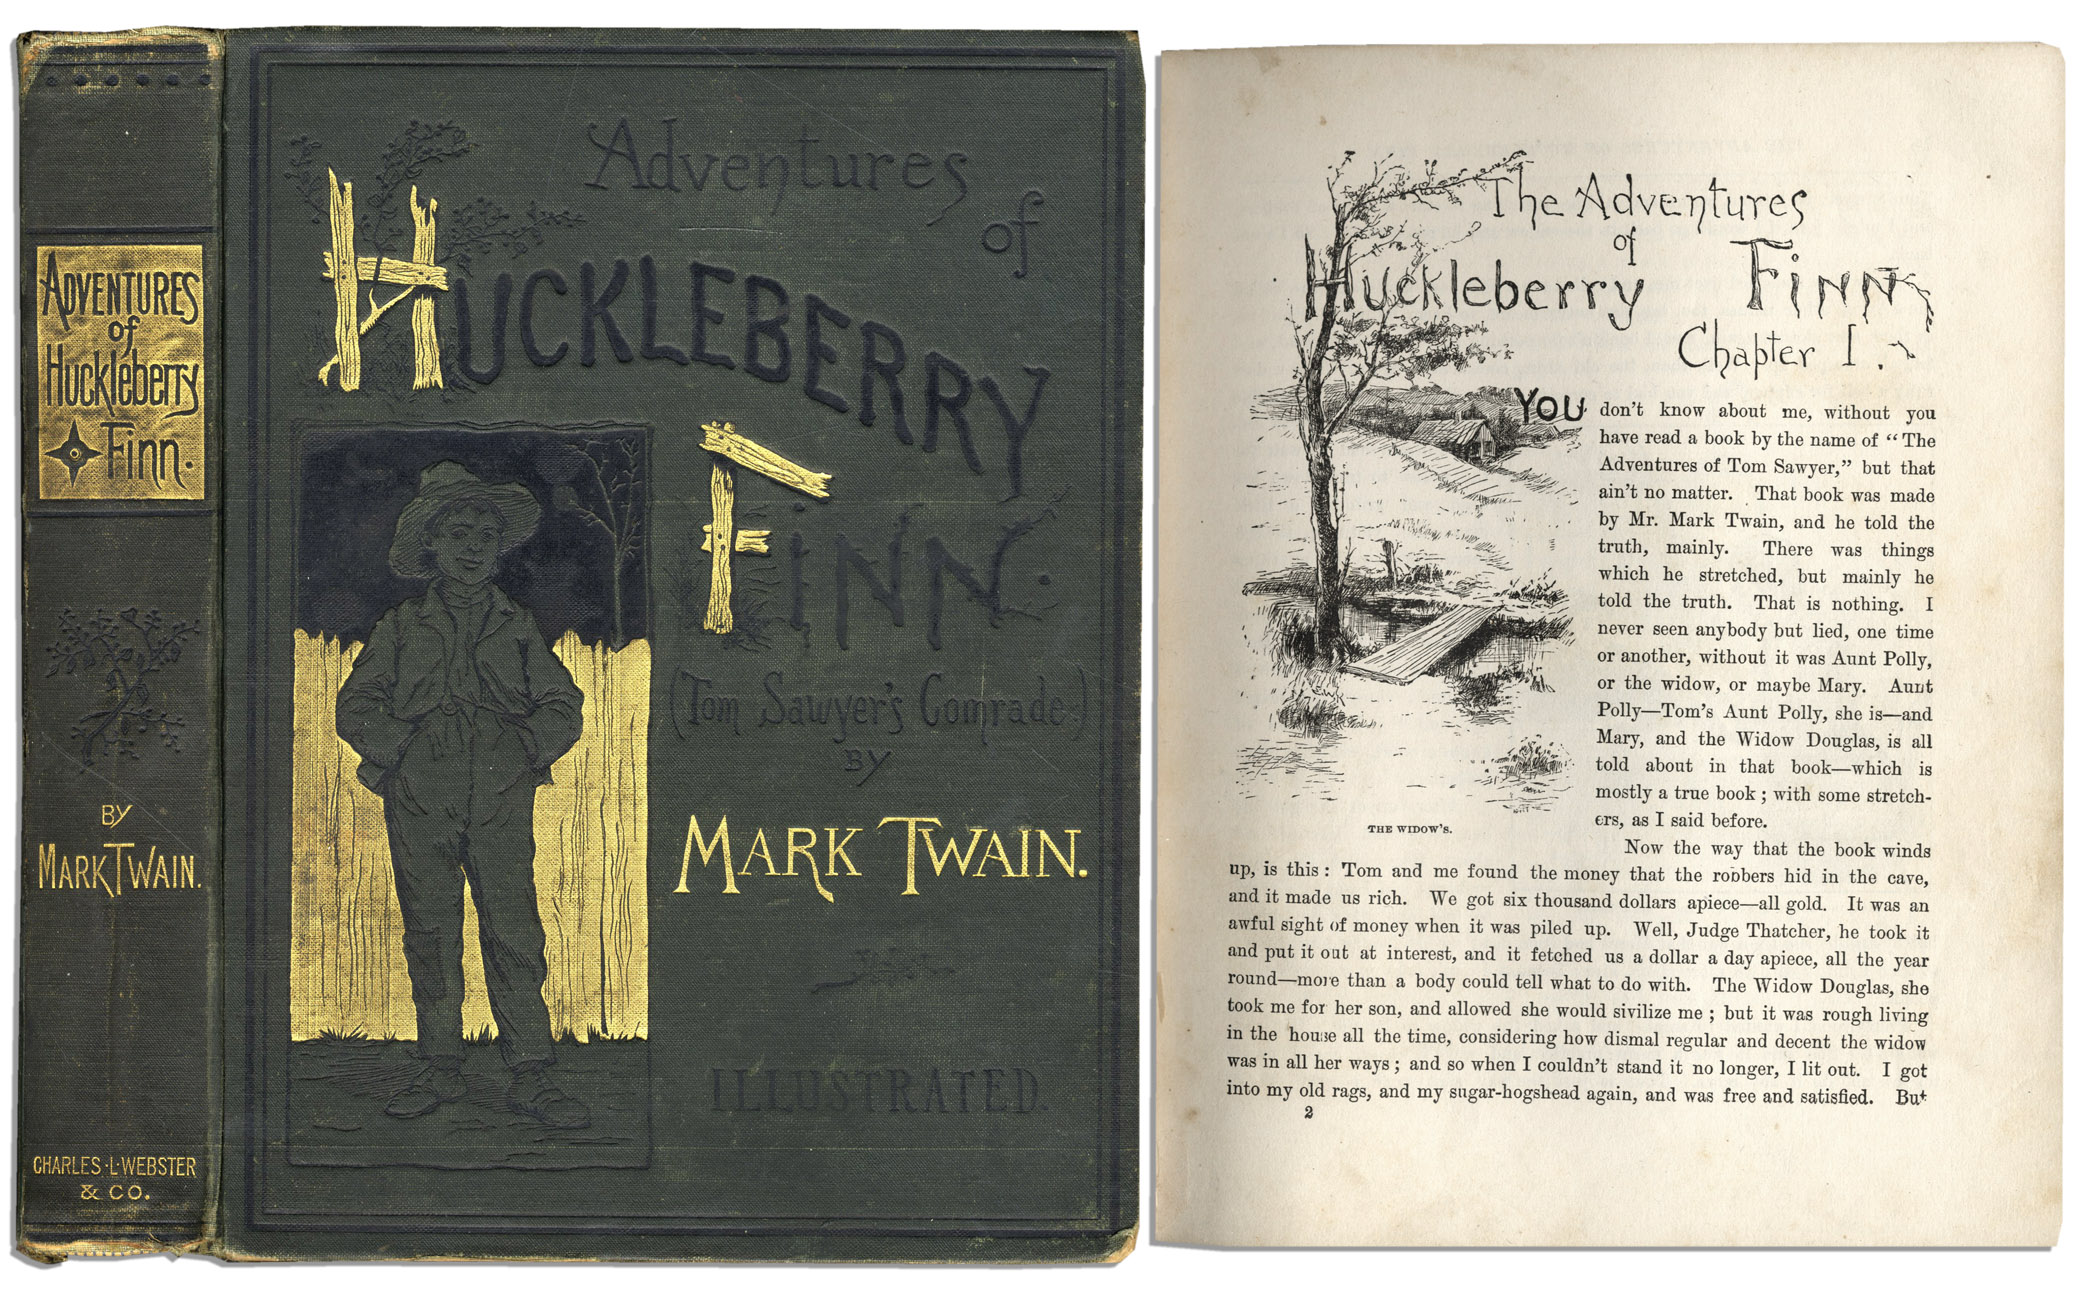 huckleberry finn beloved Buy a cheap copy of tom sawyer & huckleberry finn book by mark twain readers alike continue to enjoy this delightful classic of the promise and dreams of youth from one of america's most beloved authors adventures of huckleberry finn he has no mother, his father is a brutal drunkard, and.